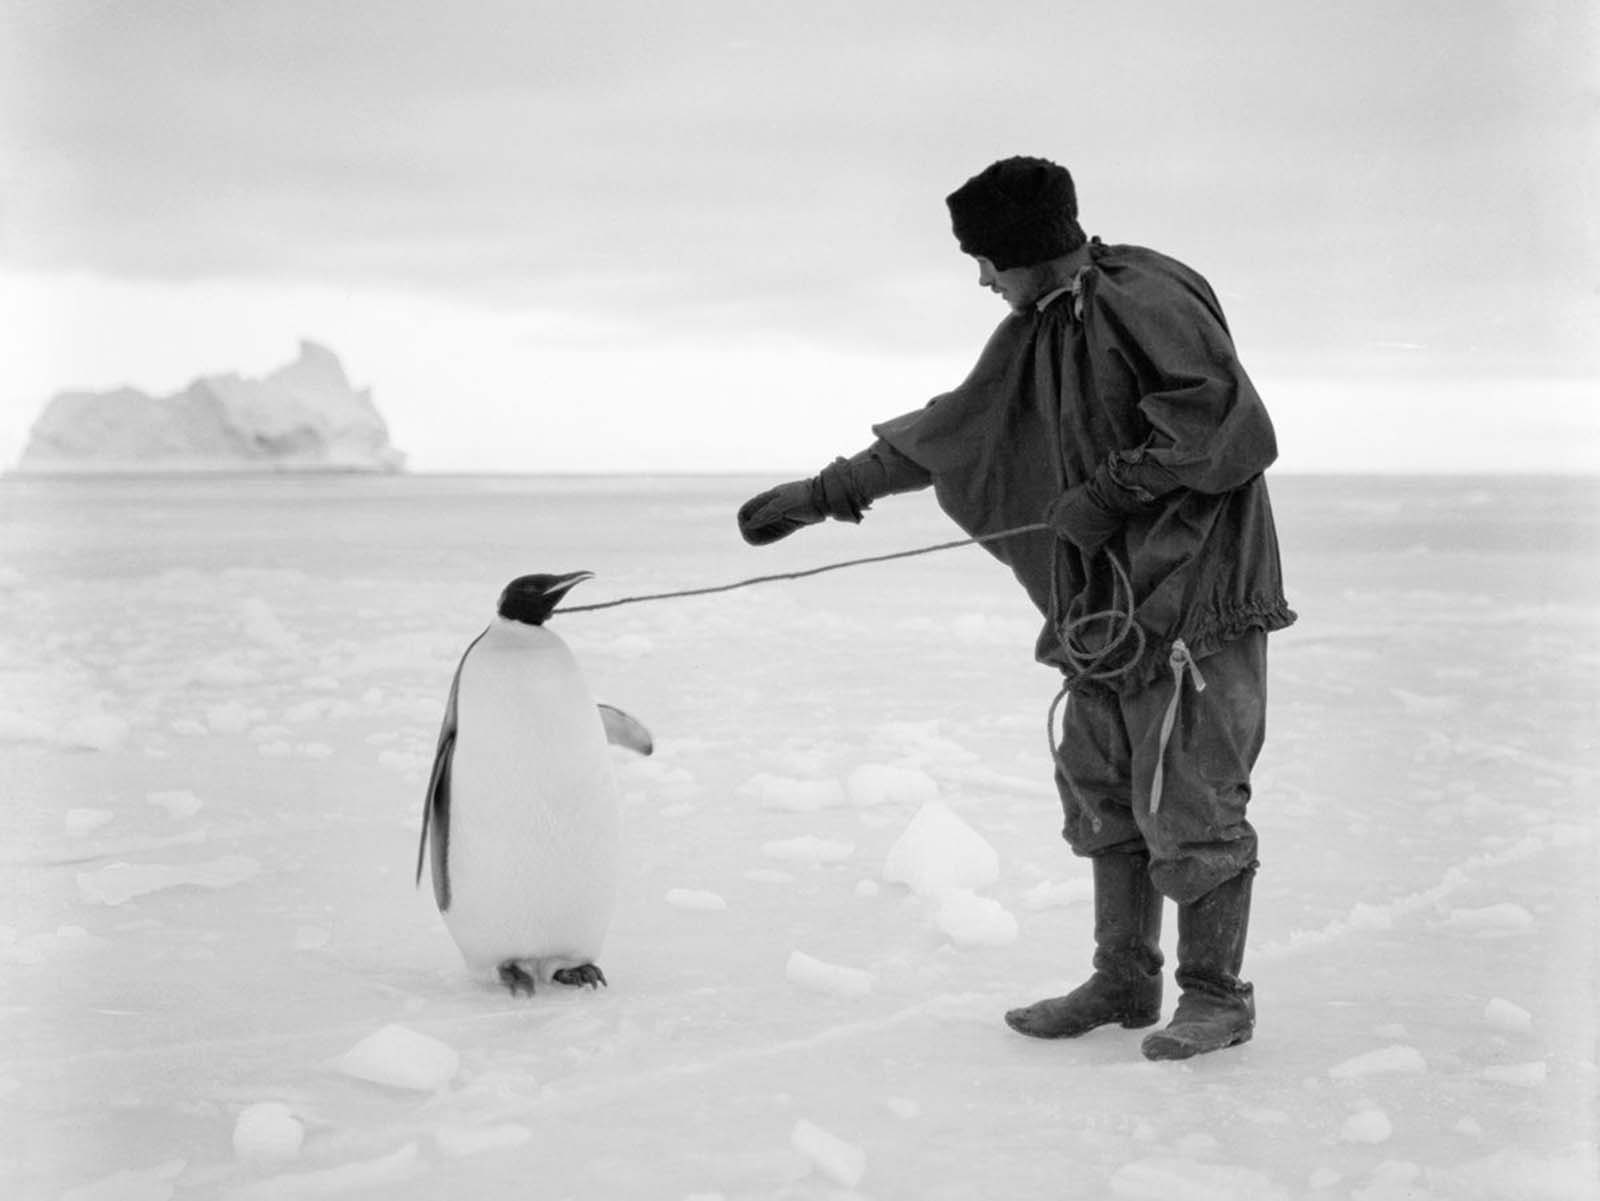 Expedition cook Thomas Clissold leads an Emperor penguin by a rope. April 1, 1911.